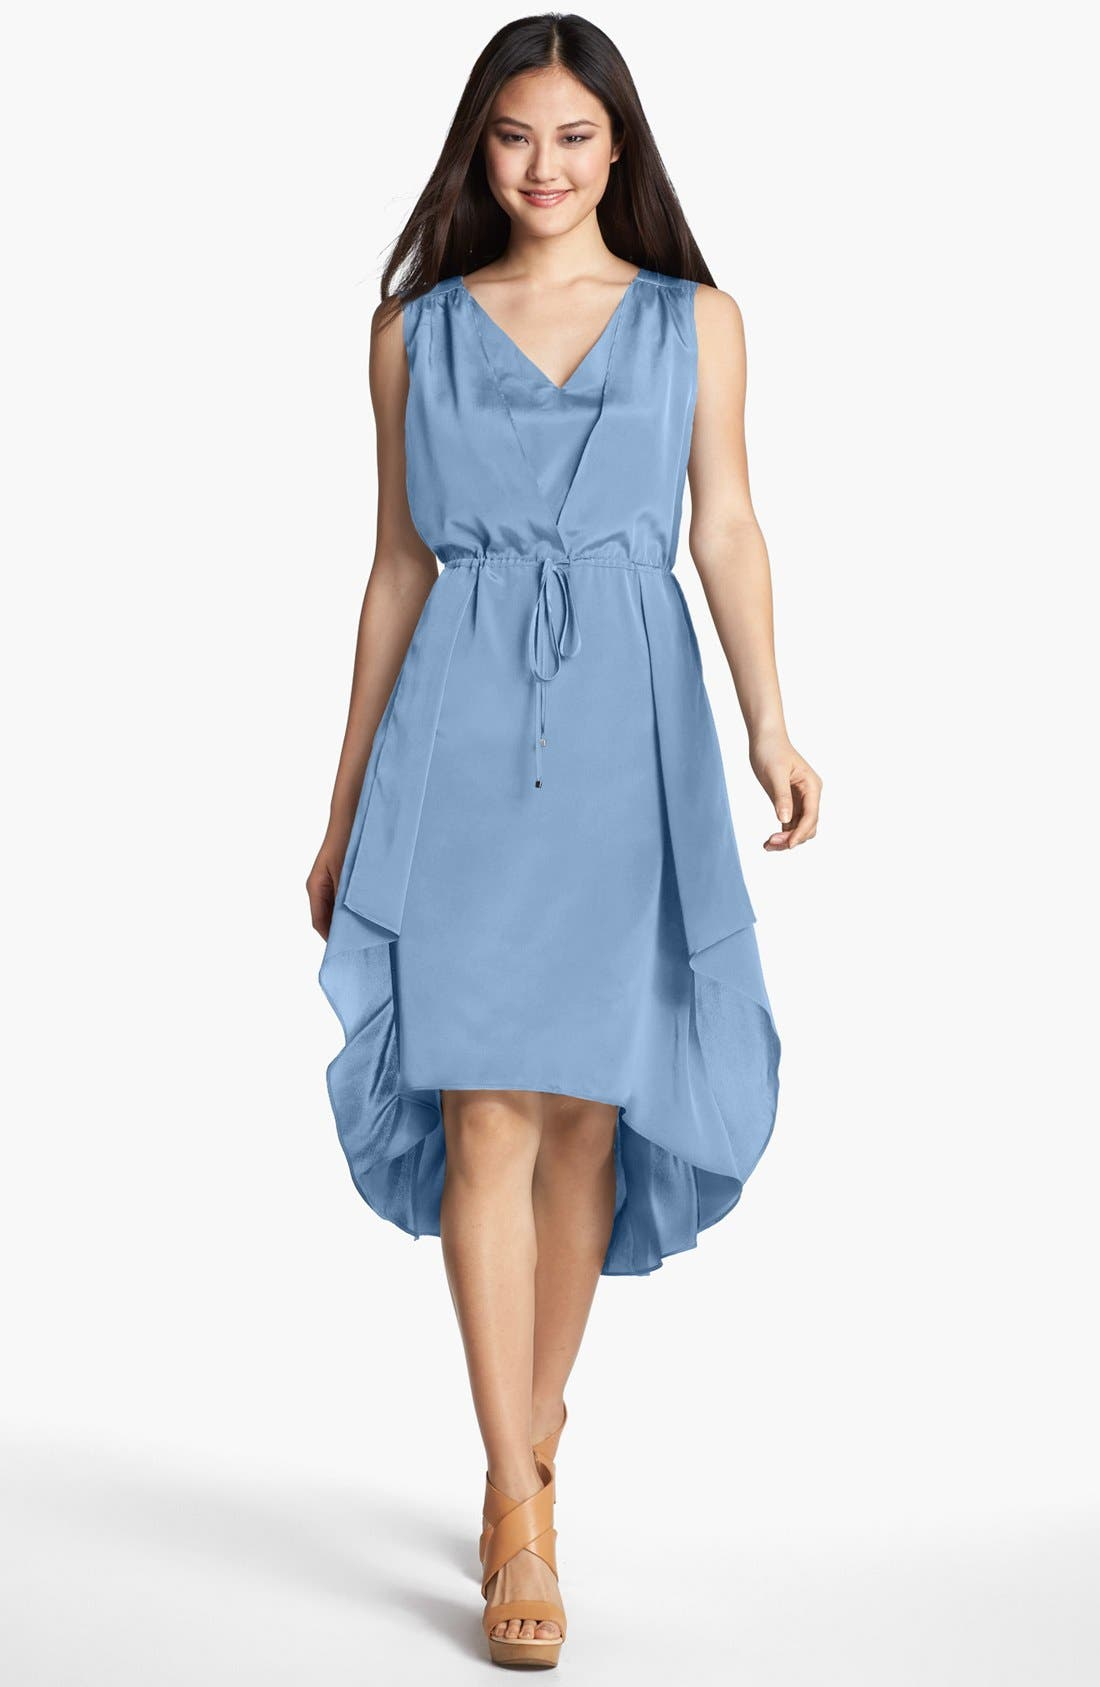 Alternate Image 1 Selected - Kenneth Cole New York 'Gracey' Sleeveless Dress